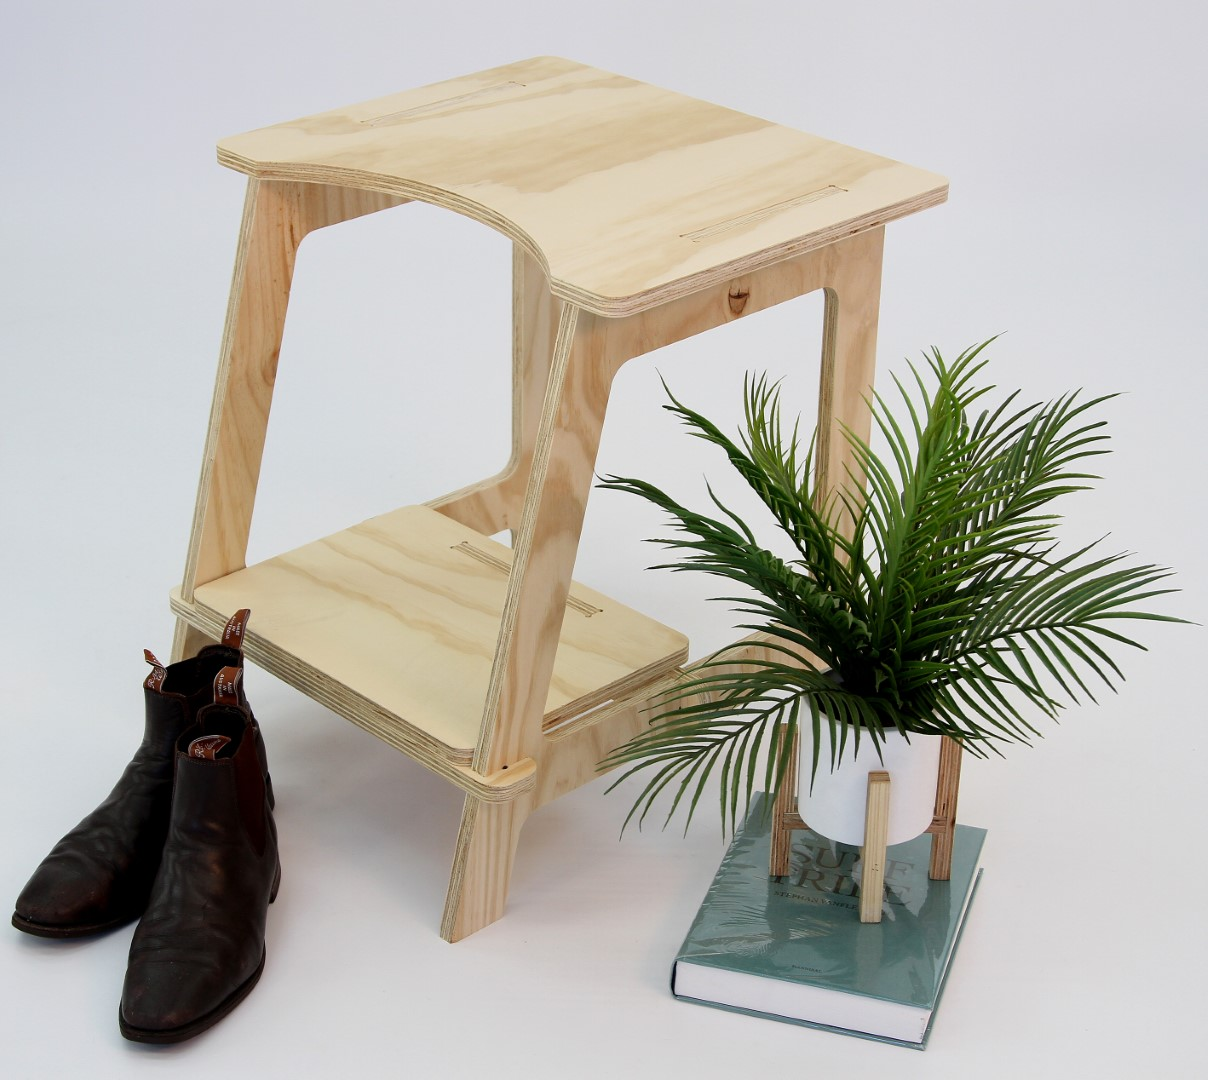 #91 Stool with Step